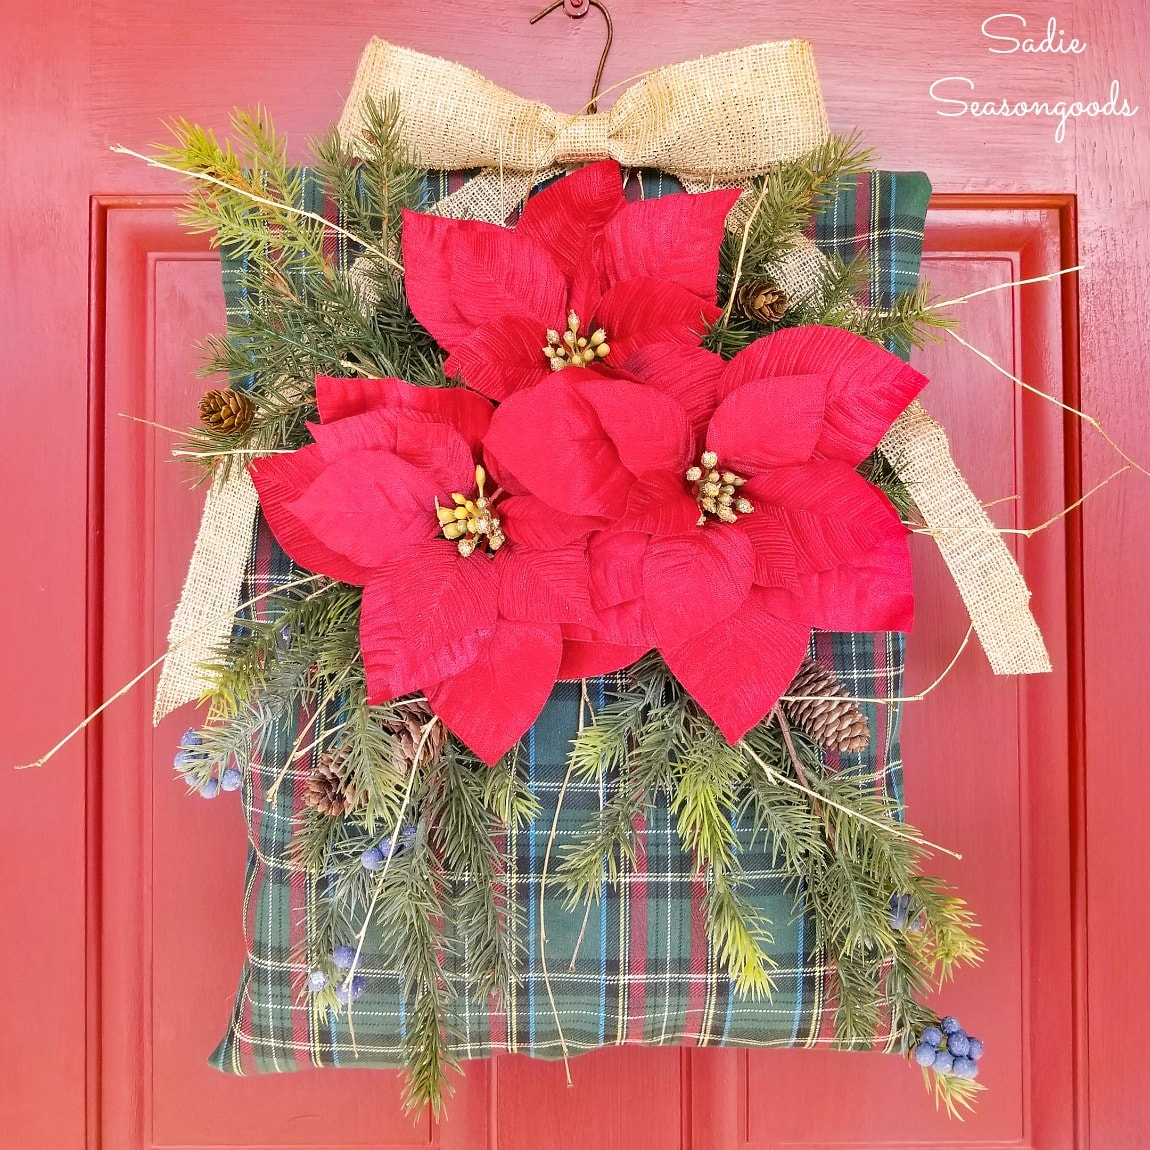 Unique Christmas Wreath with a Clothespin Bag